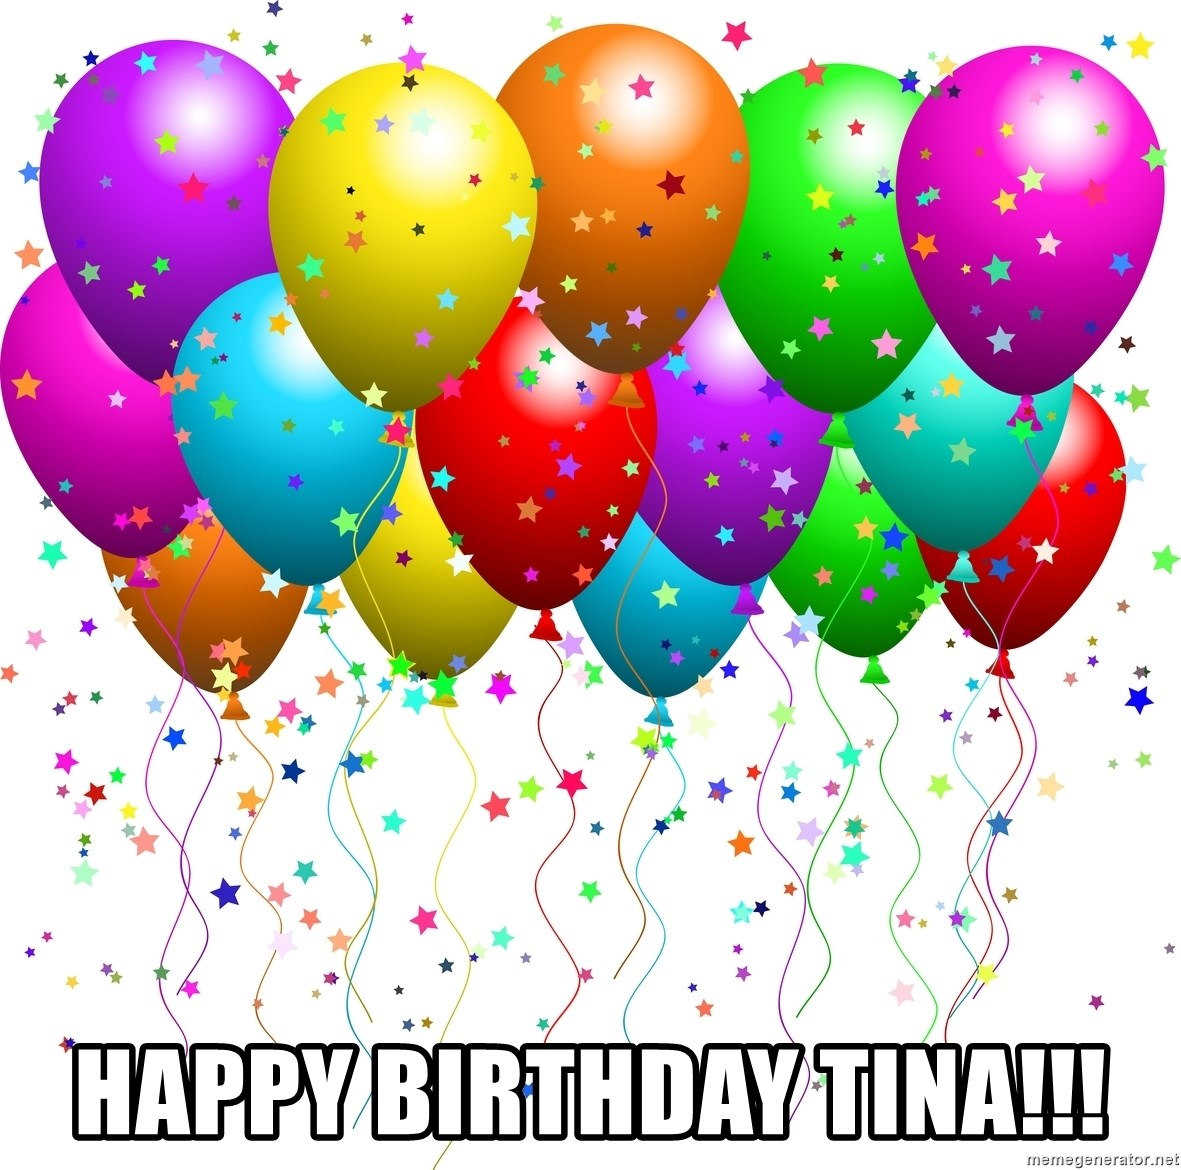 balloons - Happy birthday Tina!!!